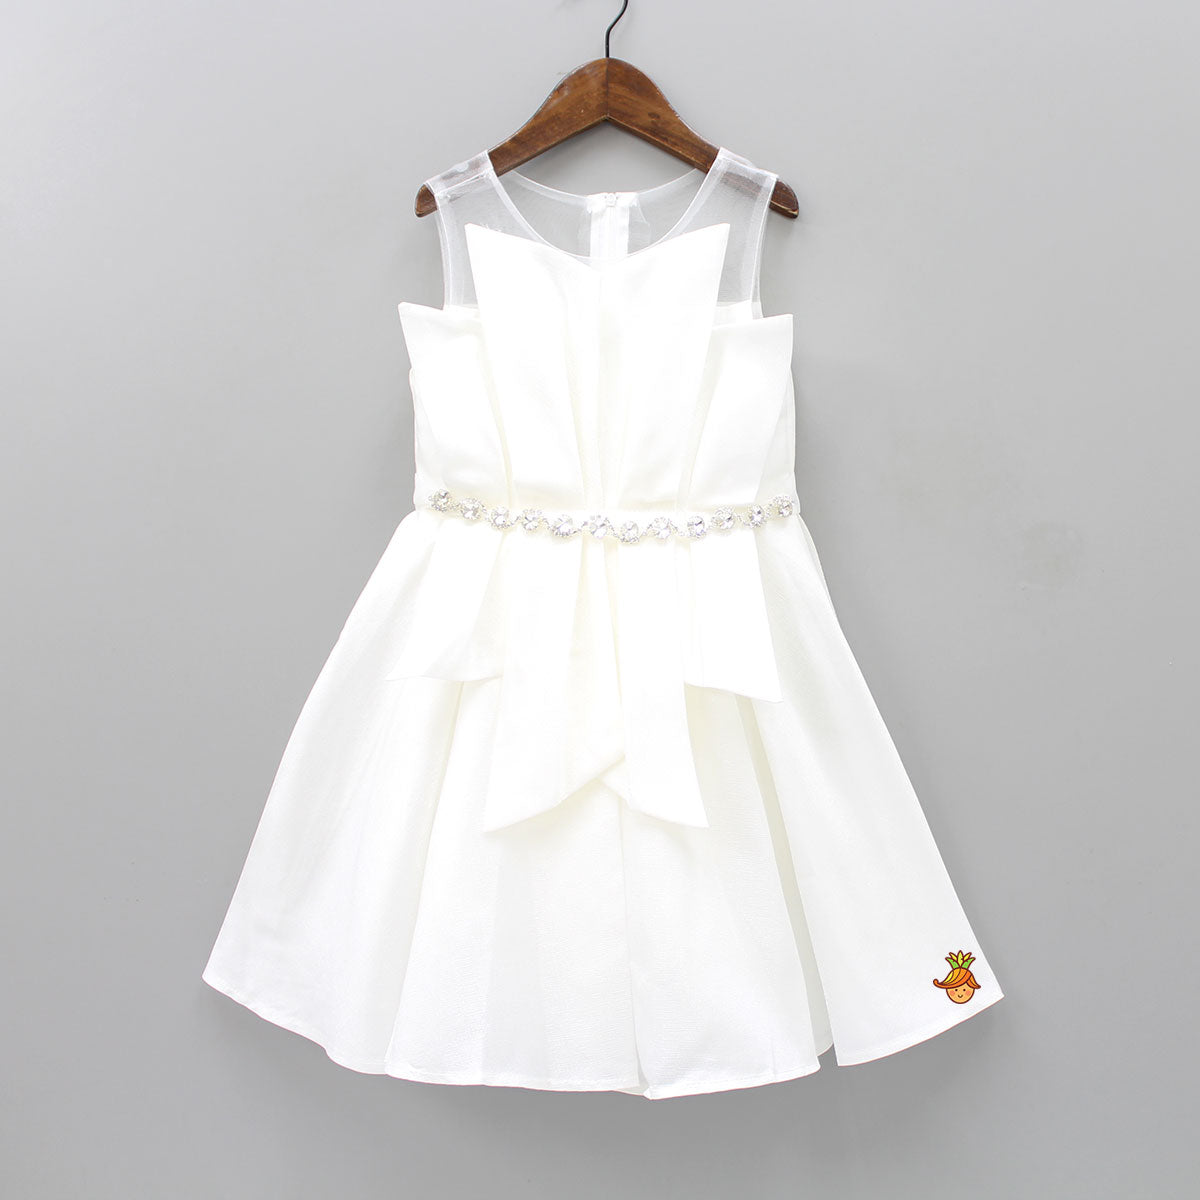 Party Princess Knee Length White Dress